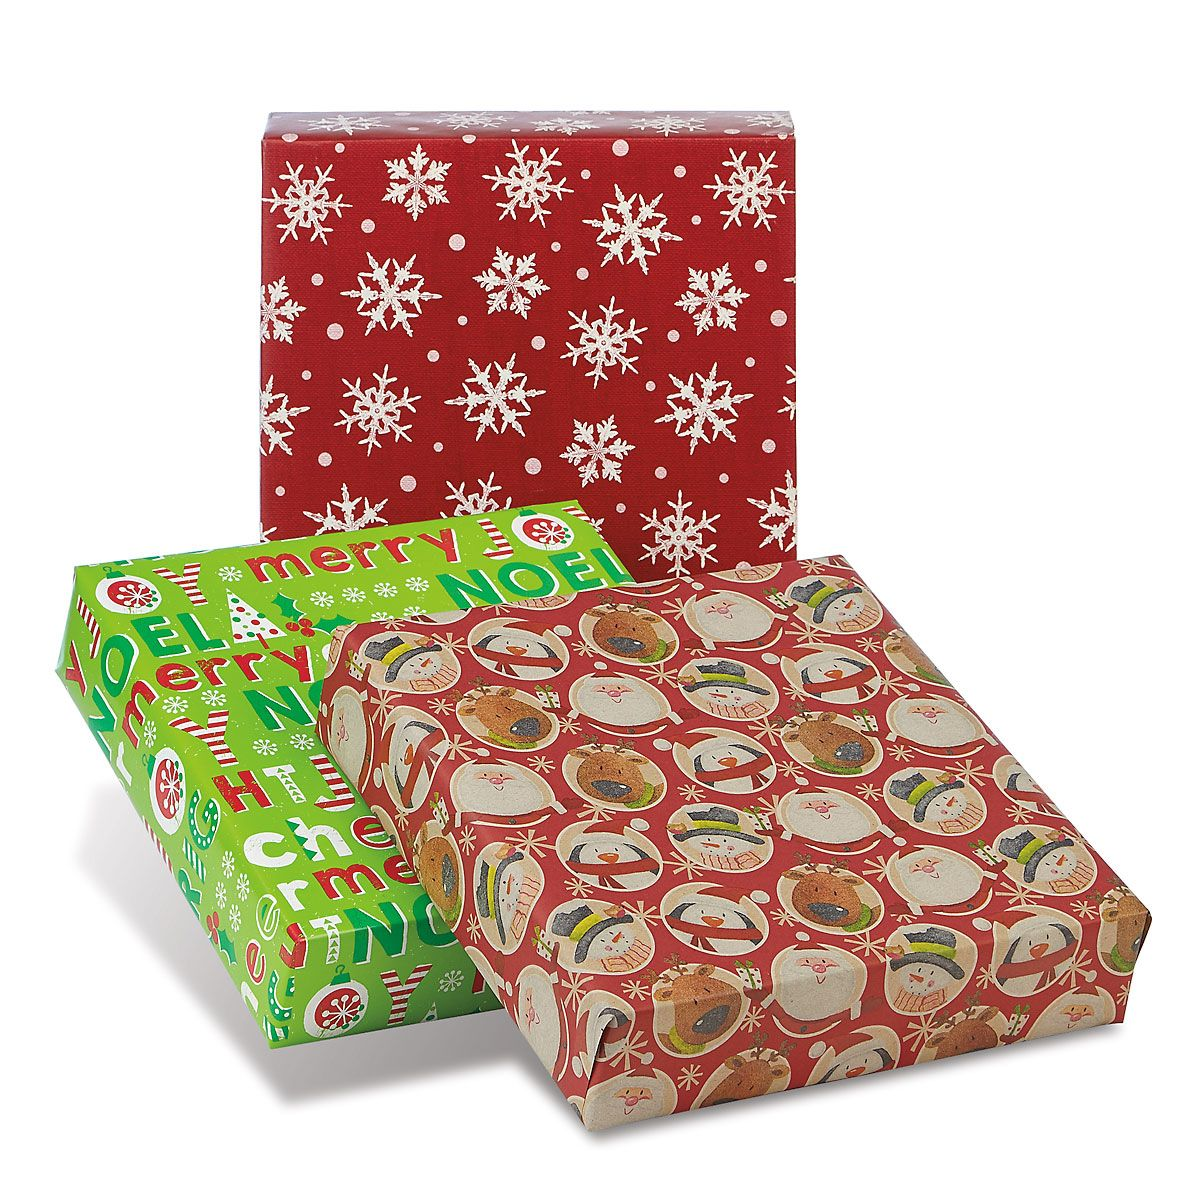 Retro Collection Jumbo Rolled Christmas Wrapping Paper Set